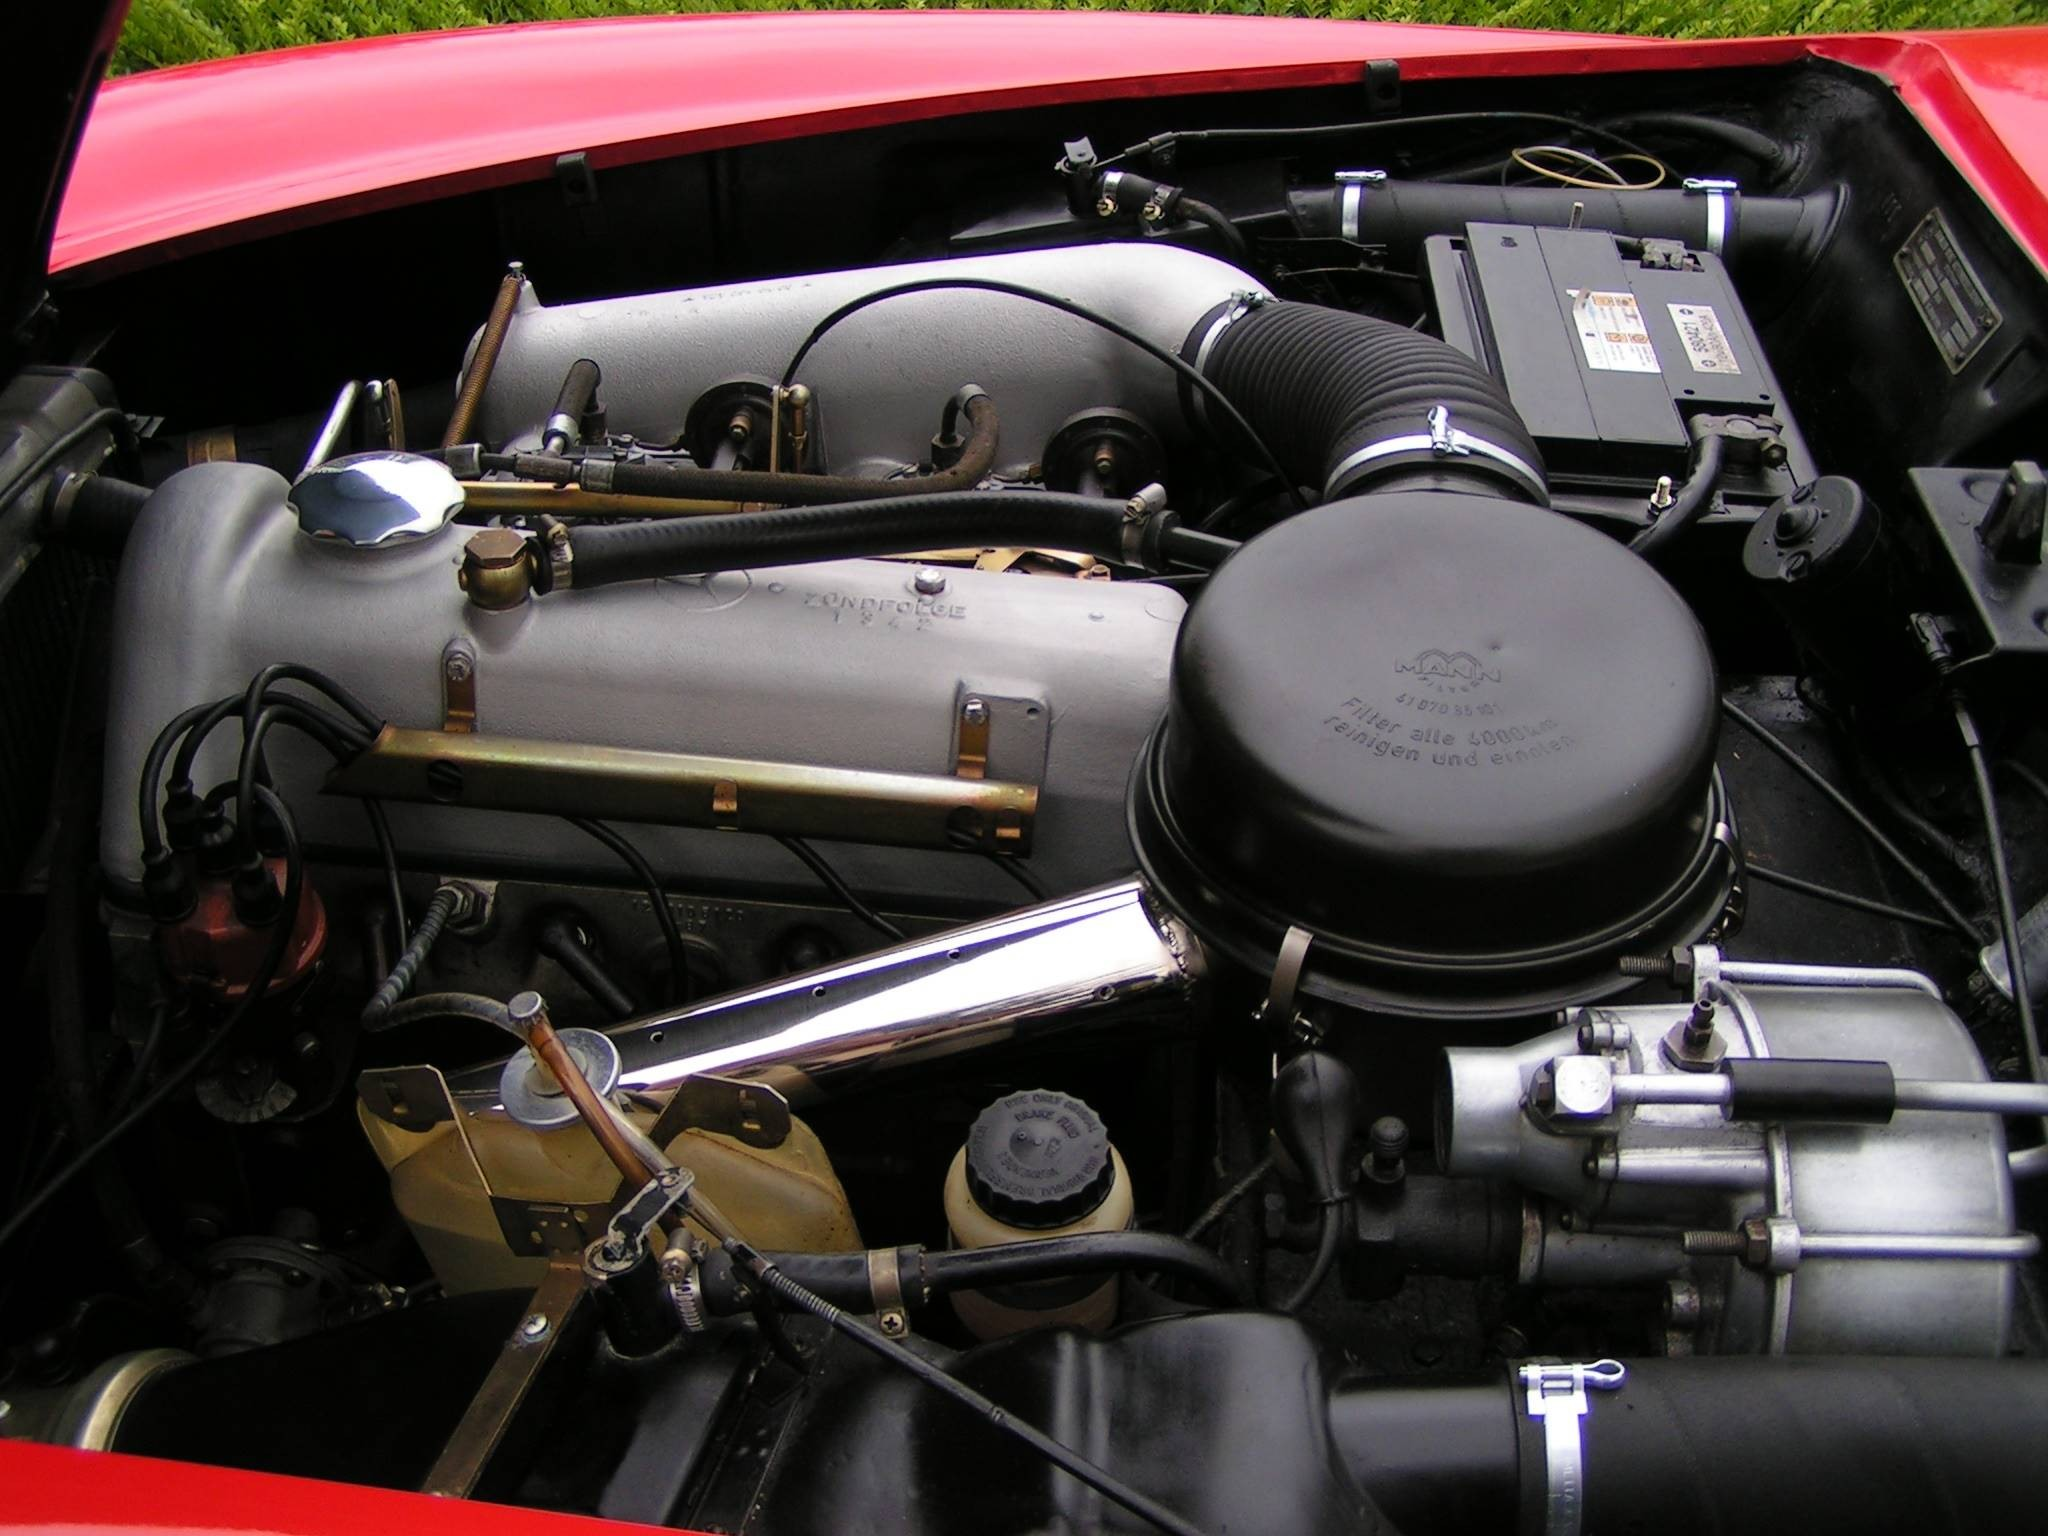 Mercedes benz m121 engine wikiwand for Mercedes benz engines